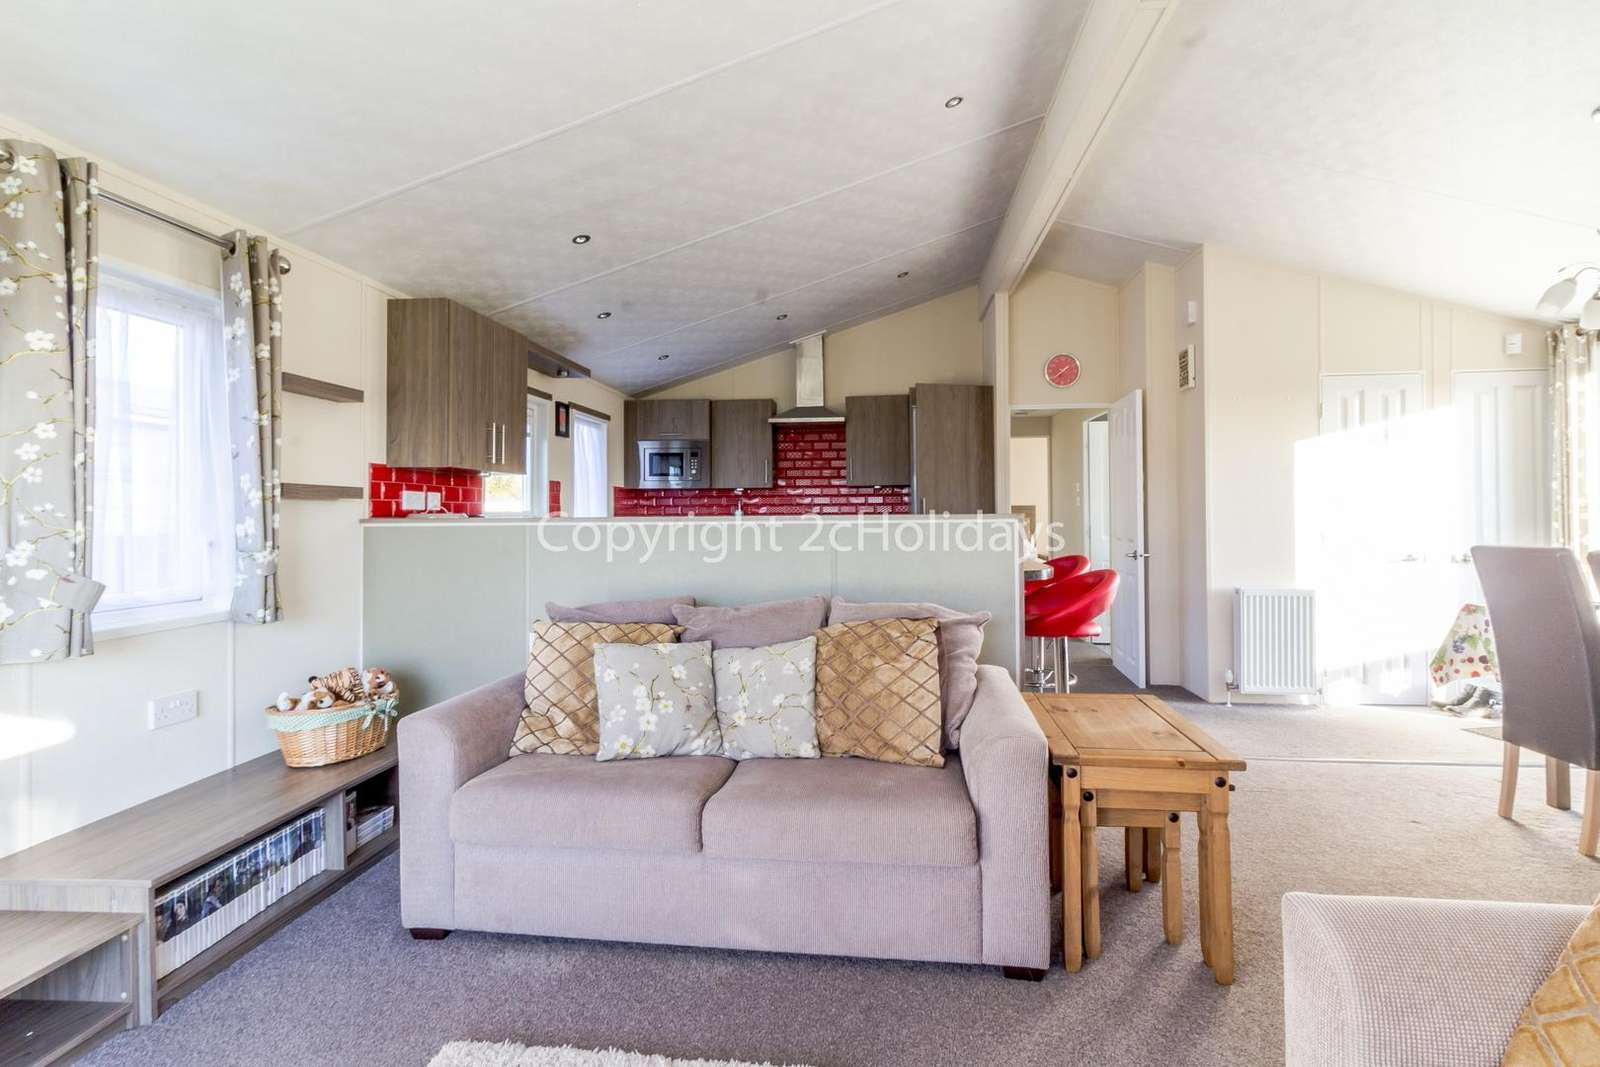 Open plan kitchen and living/dining area!